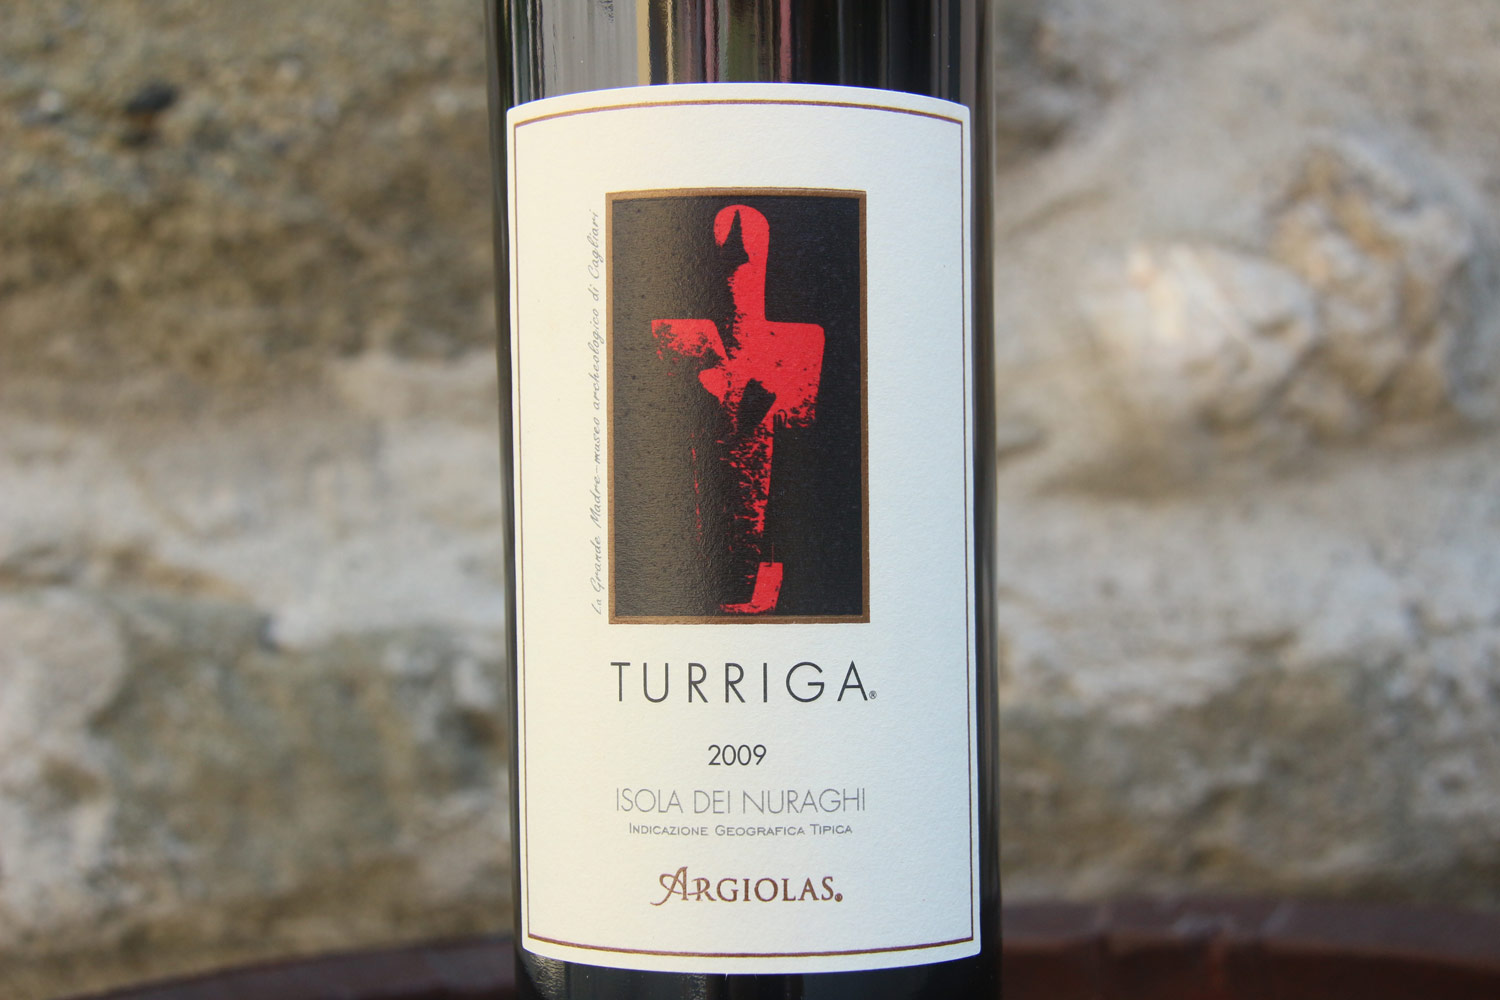 Argiolas' flagship wine, which helped put Sardinia on the map among wine cognoscenti. The label features a Nuragic fertility statue found on their property, now in the Cagliari museum.